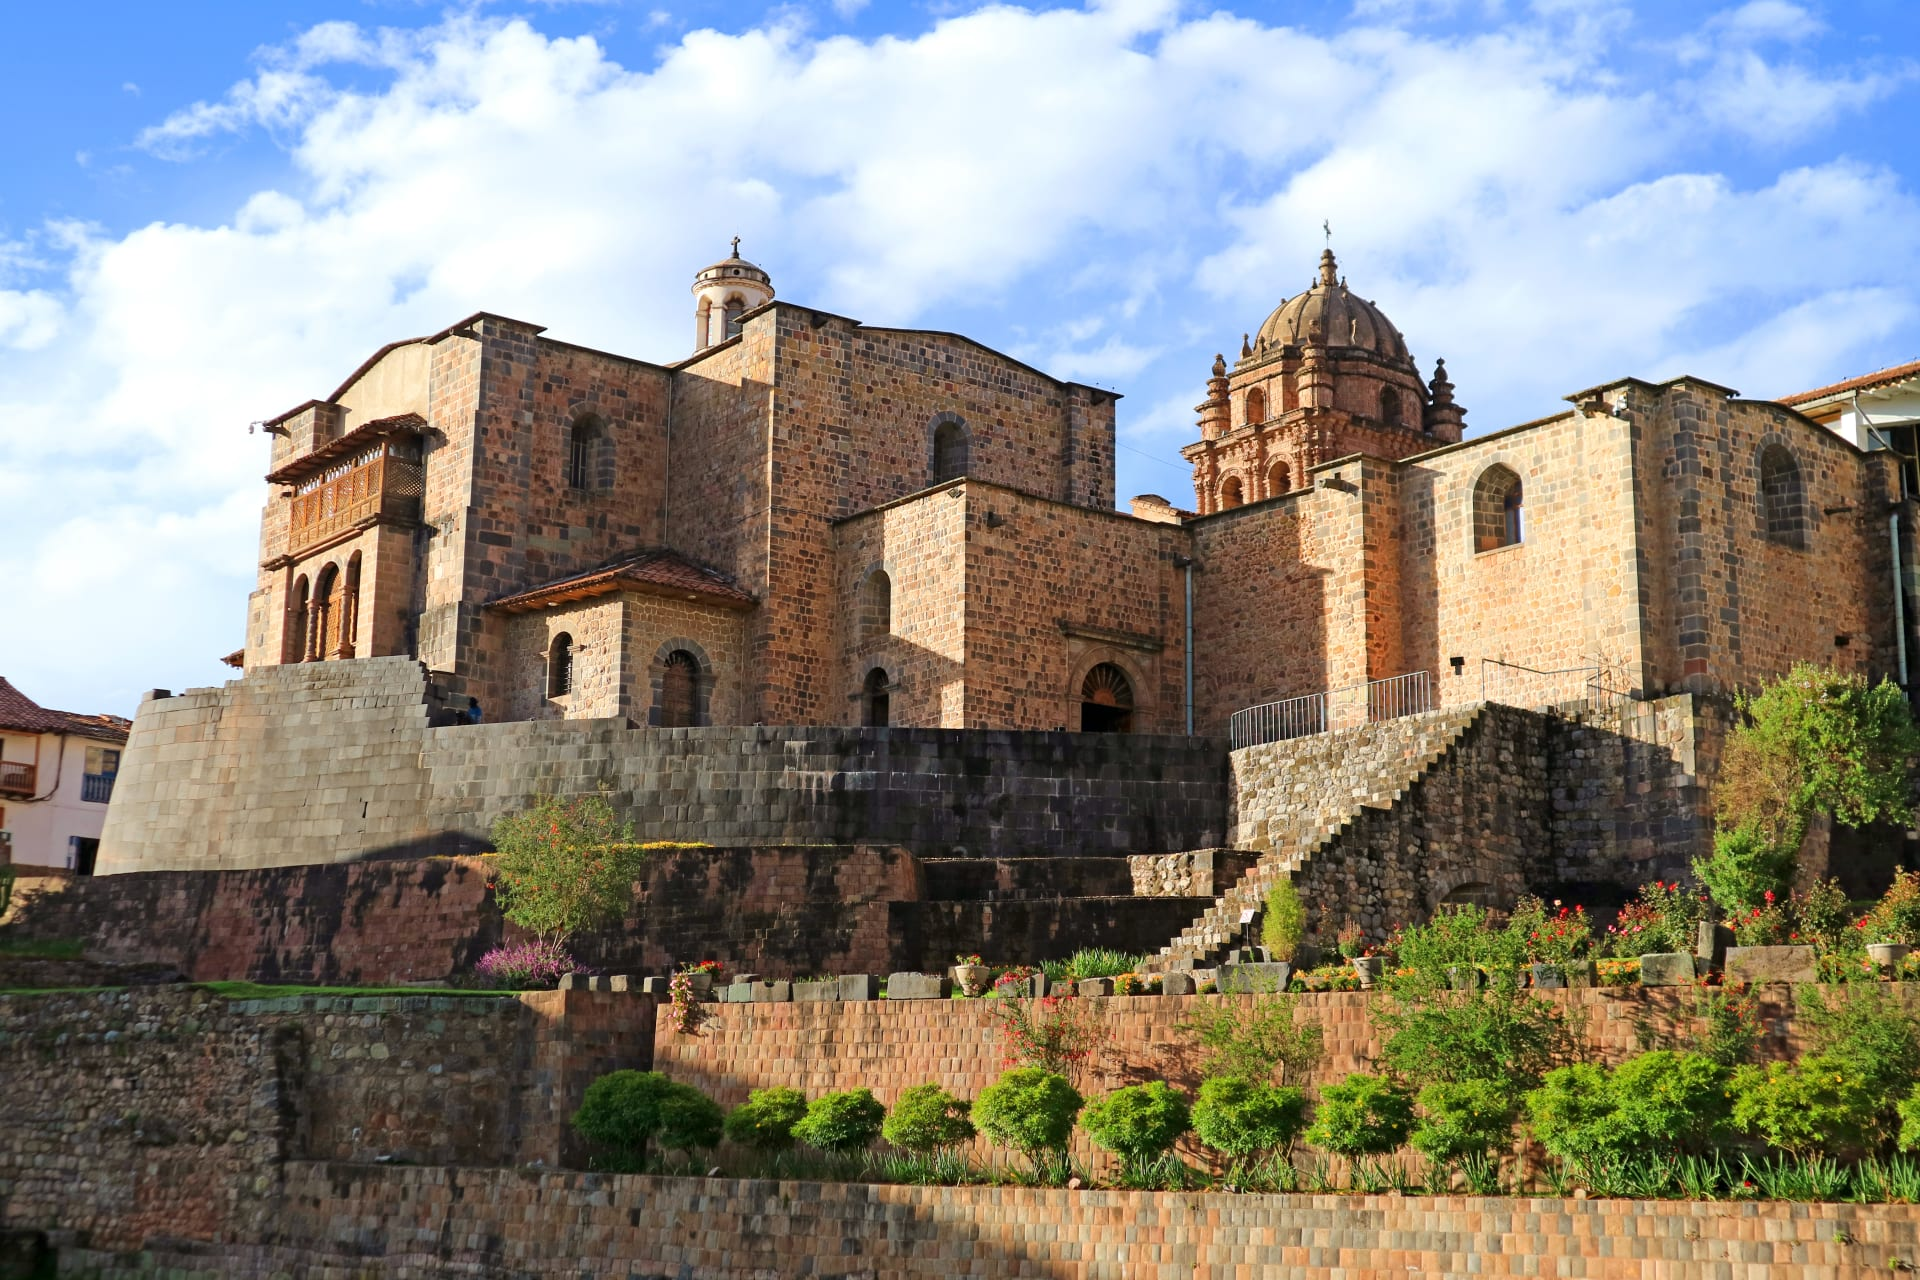 Cusco - Qorikancha: the Golden Enclosure - the Most Important Temple to the Incas in the Ancient Capital